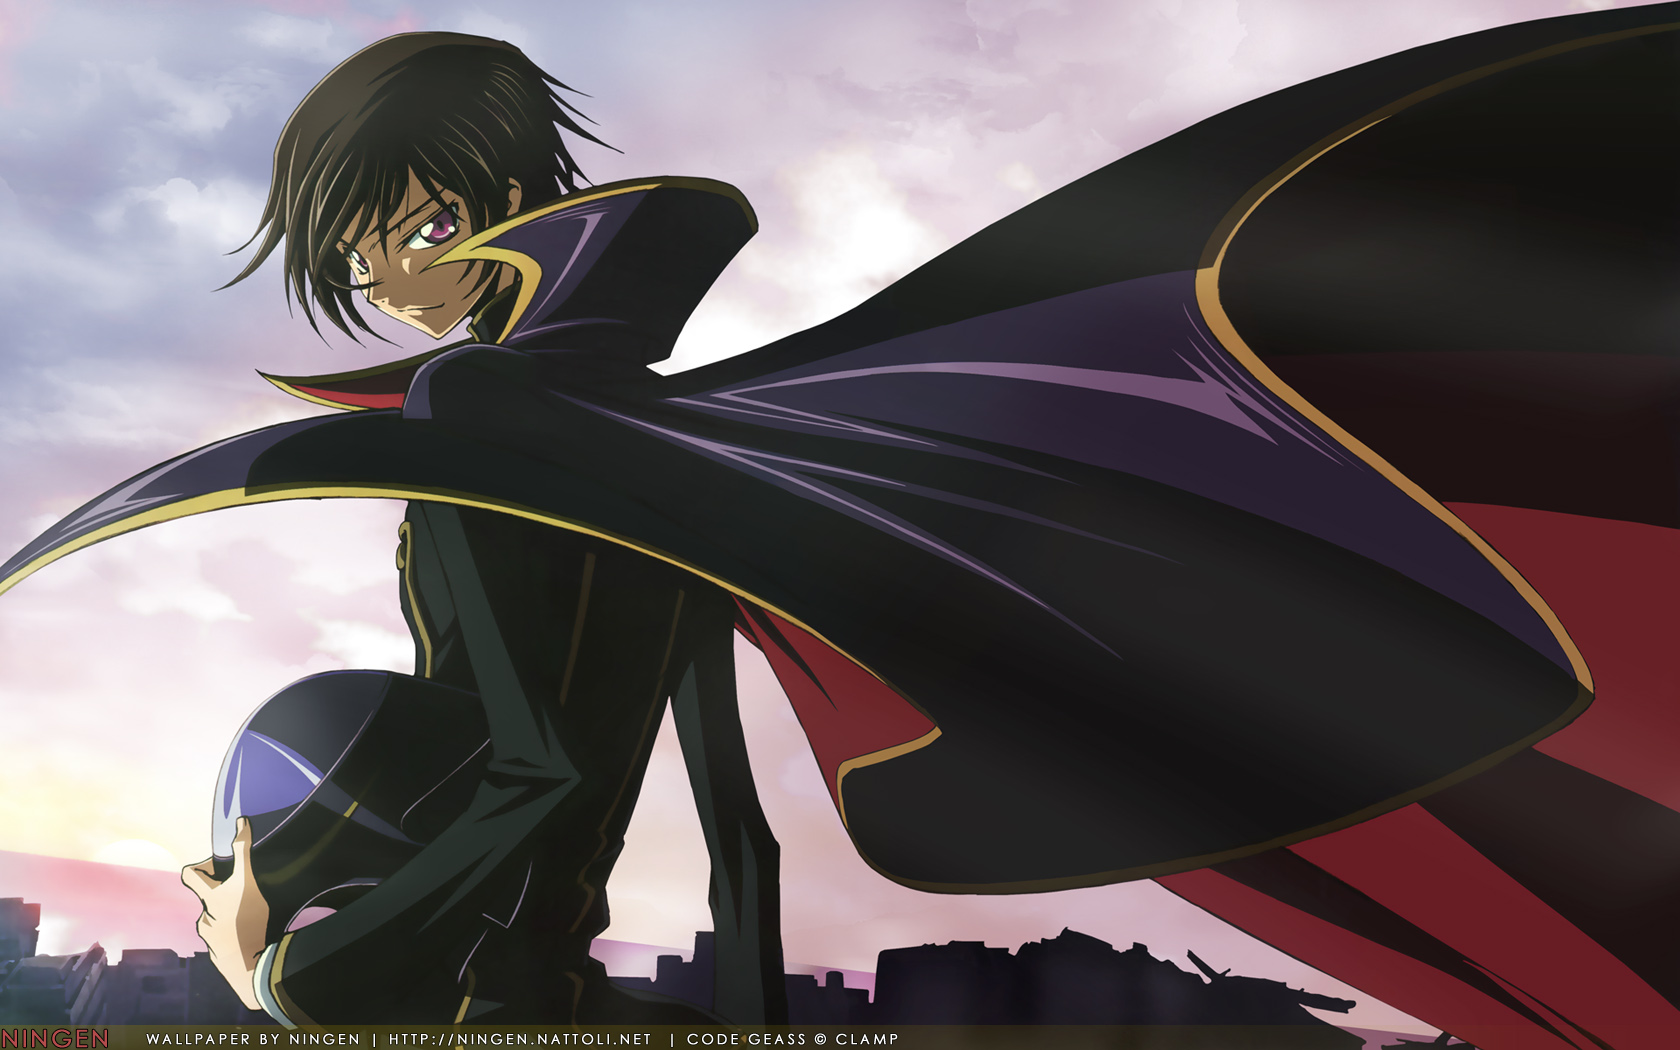 3 3 vampire knight 2 bleach number code geass Code Geass